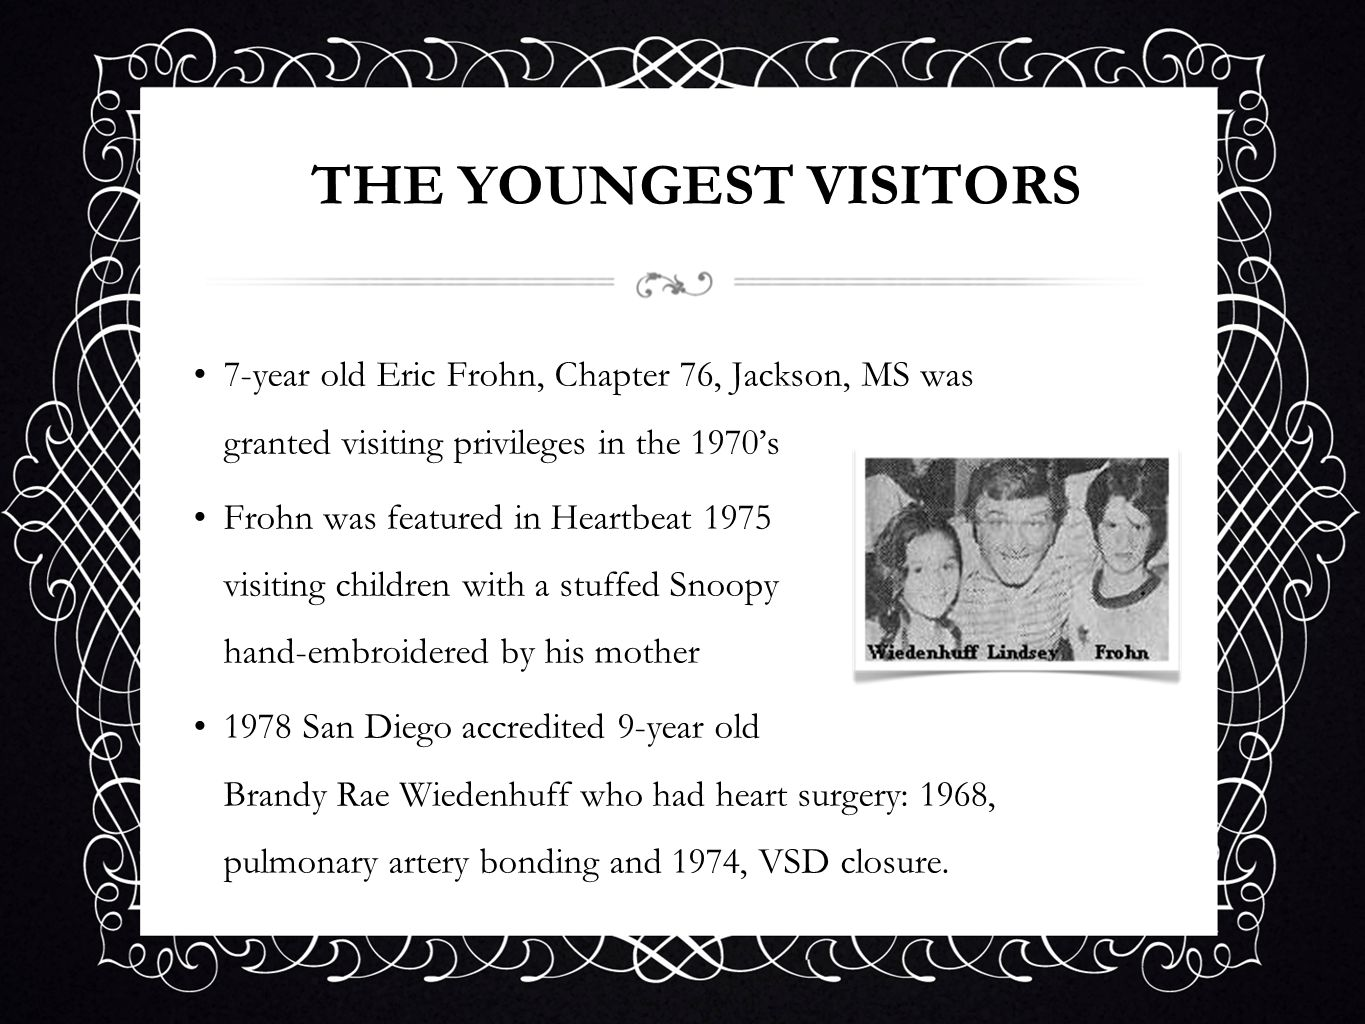 THE YOUNGEST VISITORS 7-year old Eric Frohn, Chapter 76, Jackson, MS was granted visiting privileges in the 1970's.